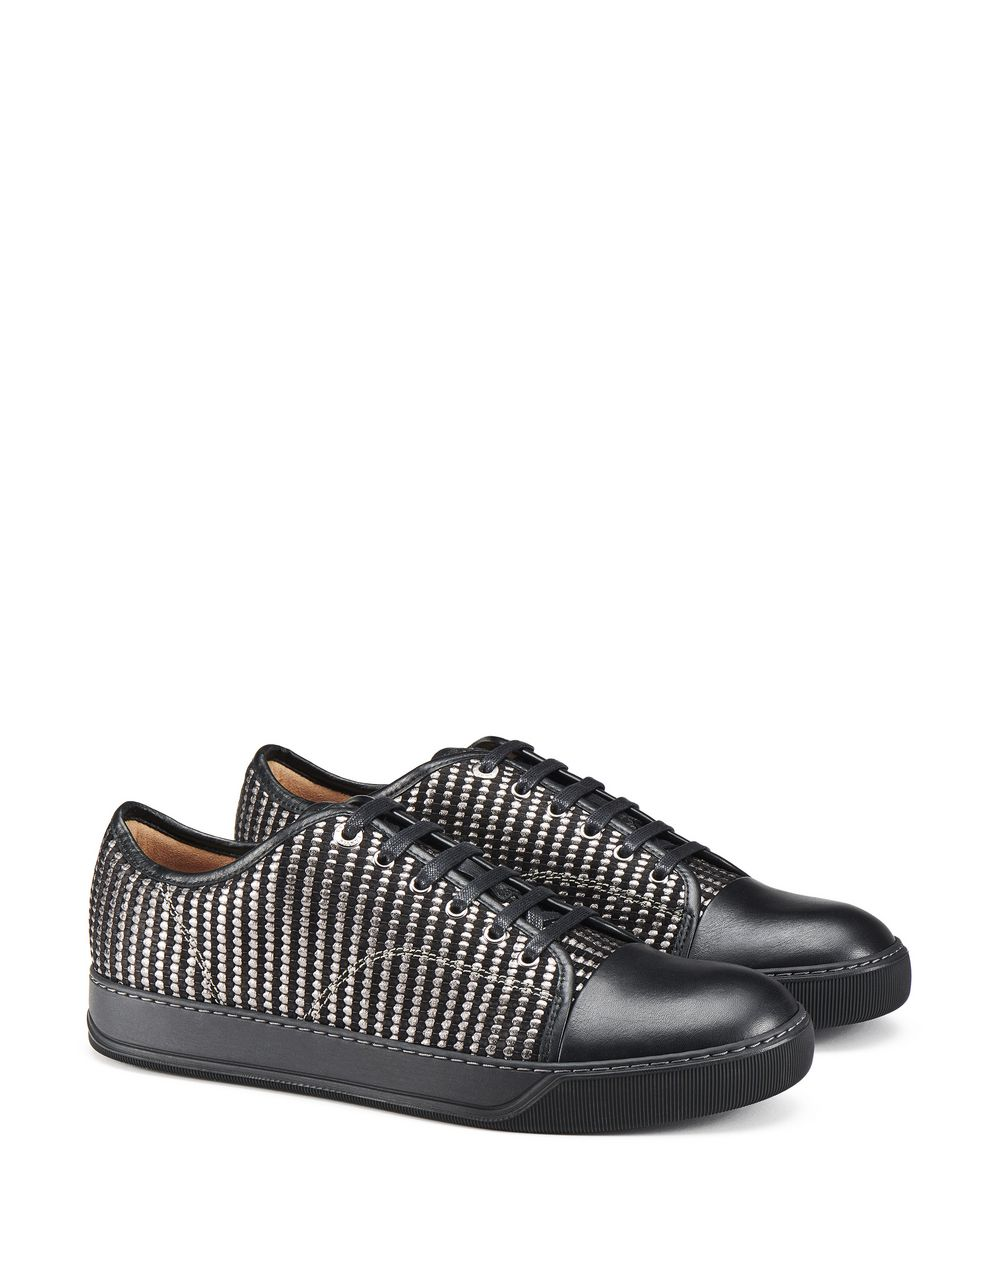 DBB1 WOVEN LEATHER SNEAKERS - Lanvin